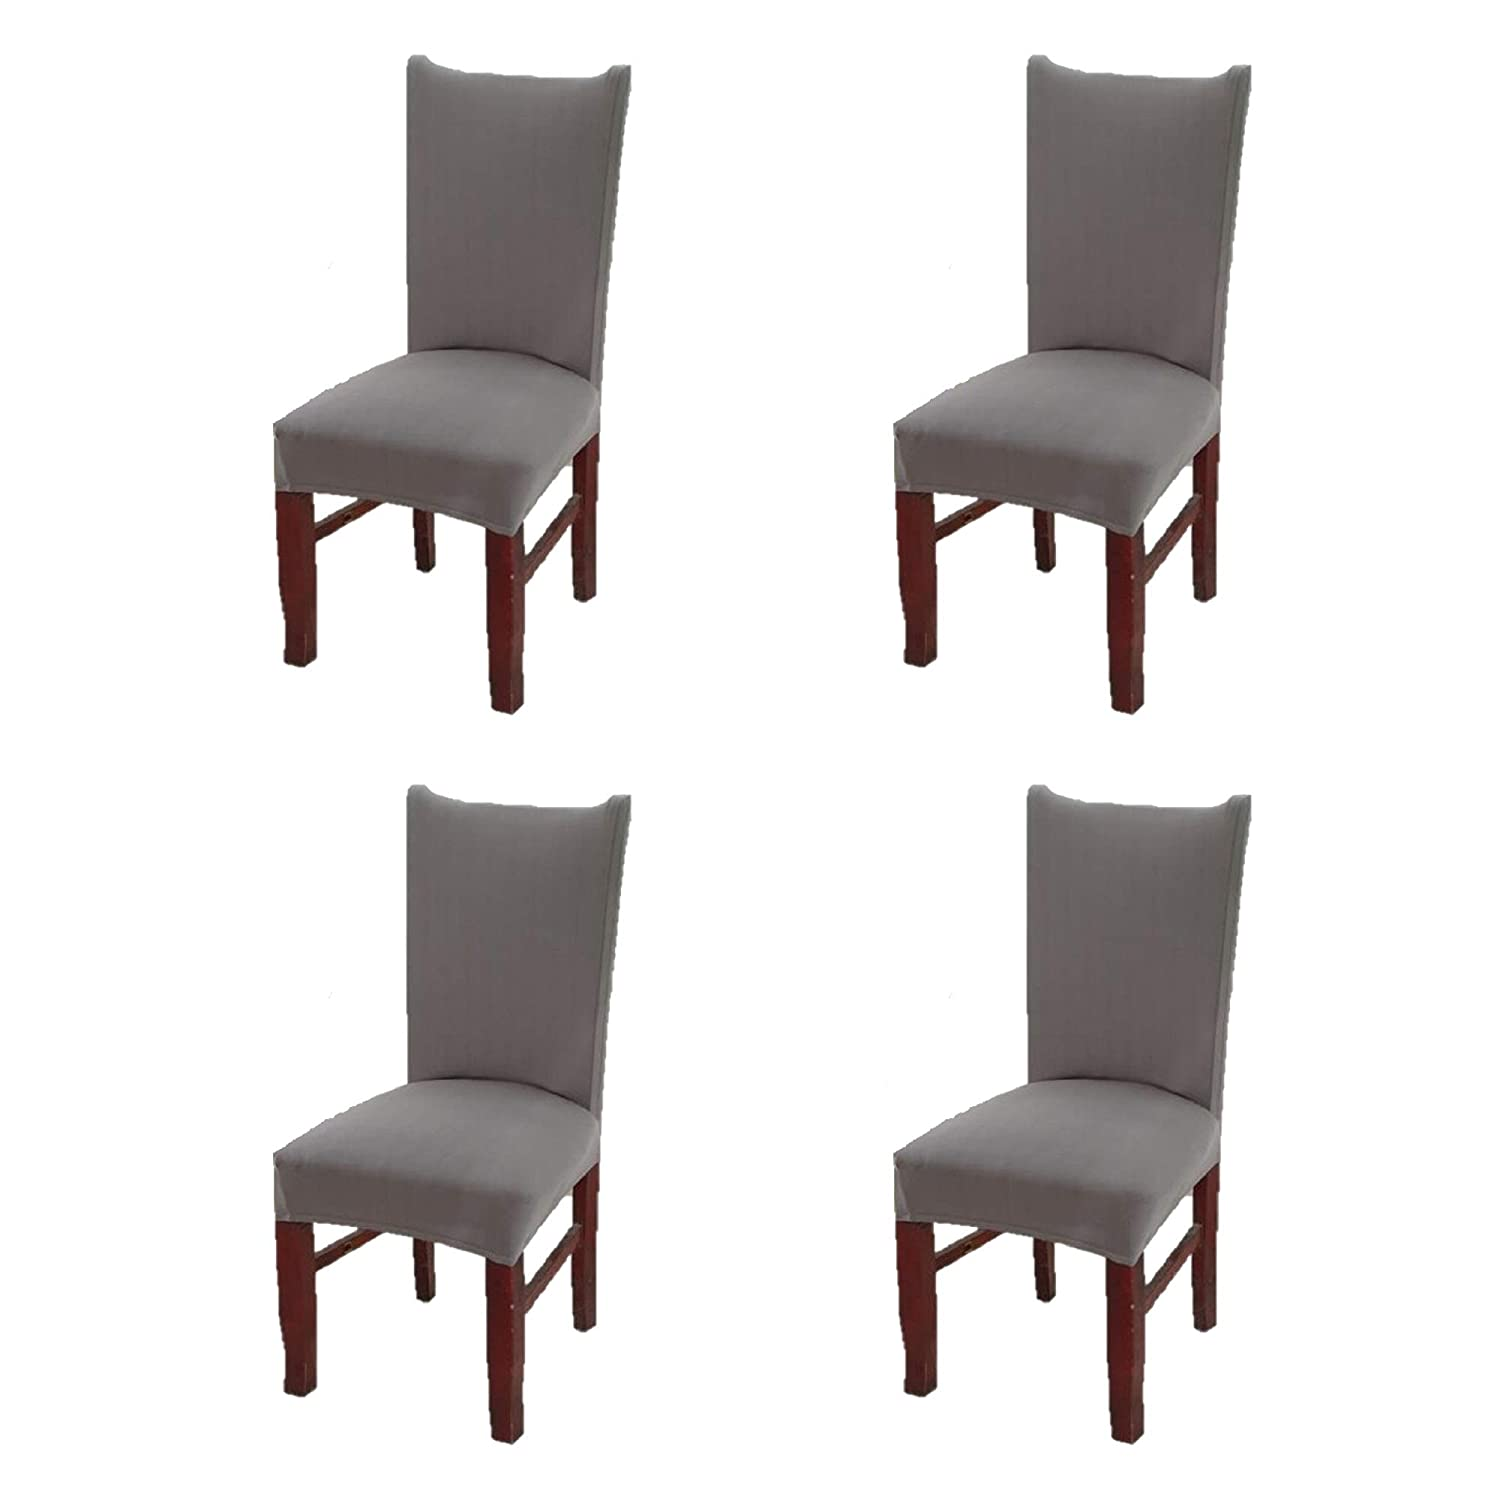 Argstar 4 Pack Chair Covers for Dining Room Spendex Slipcovers Soft Gray